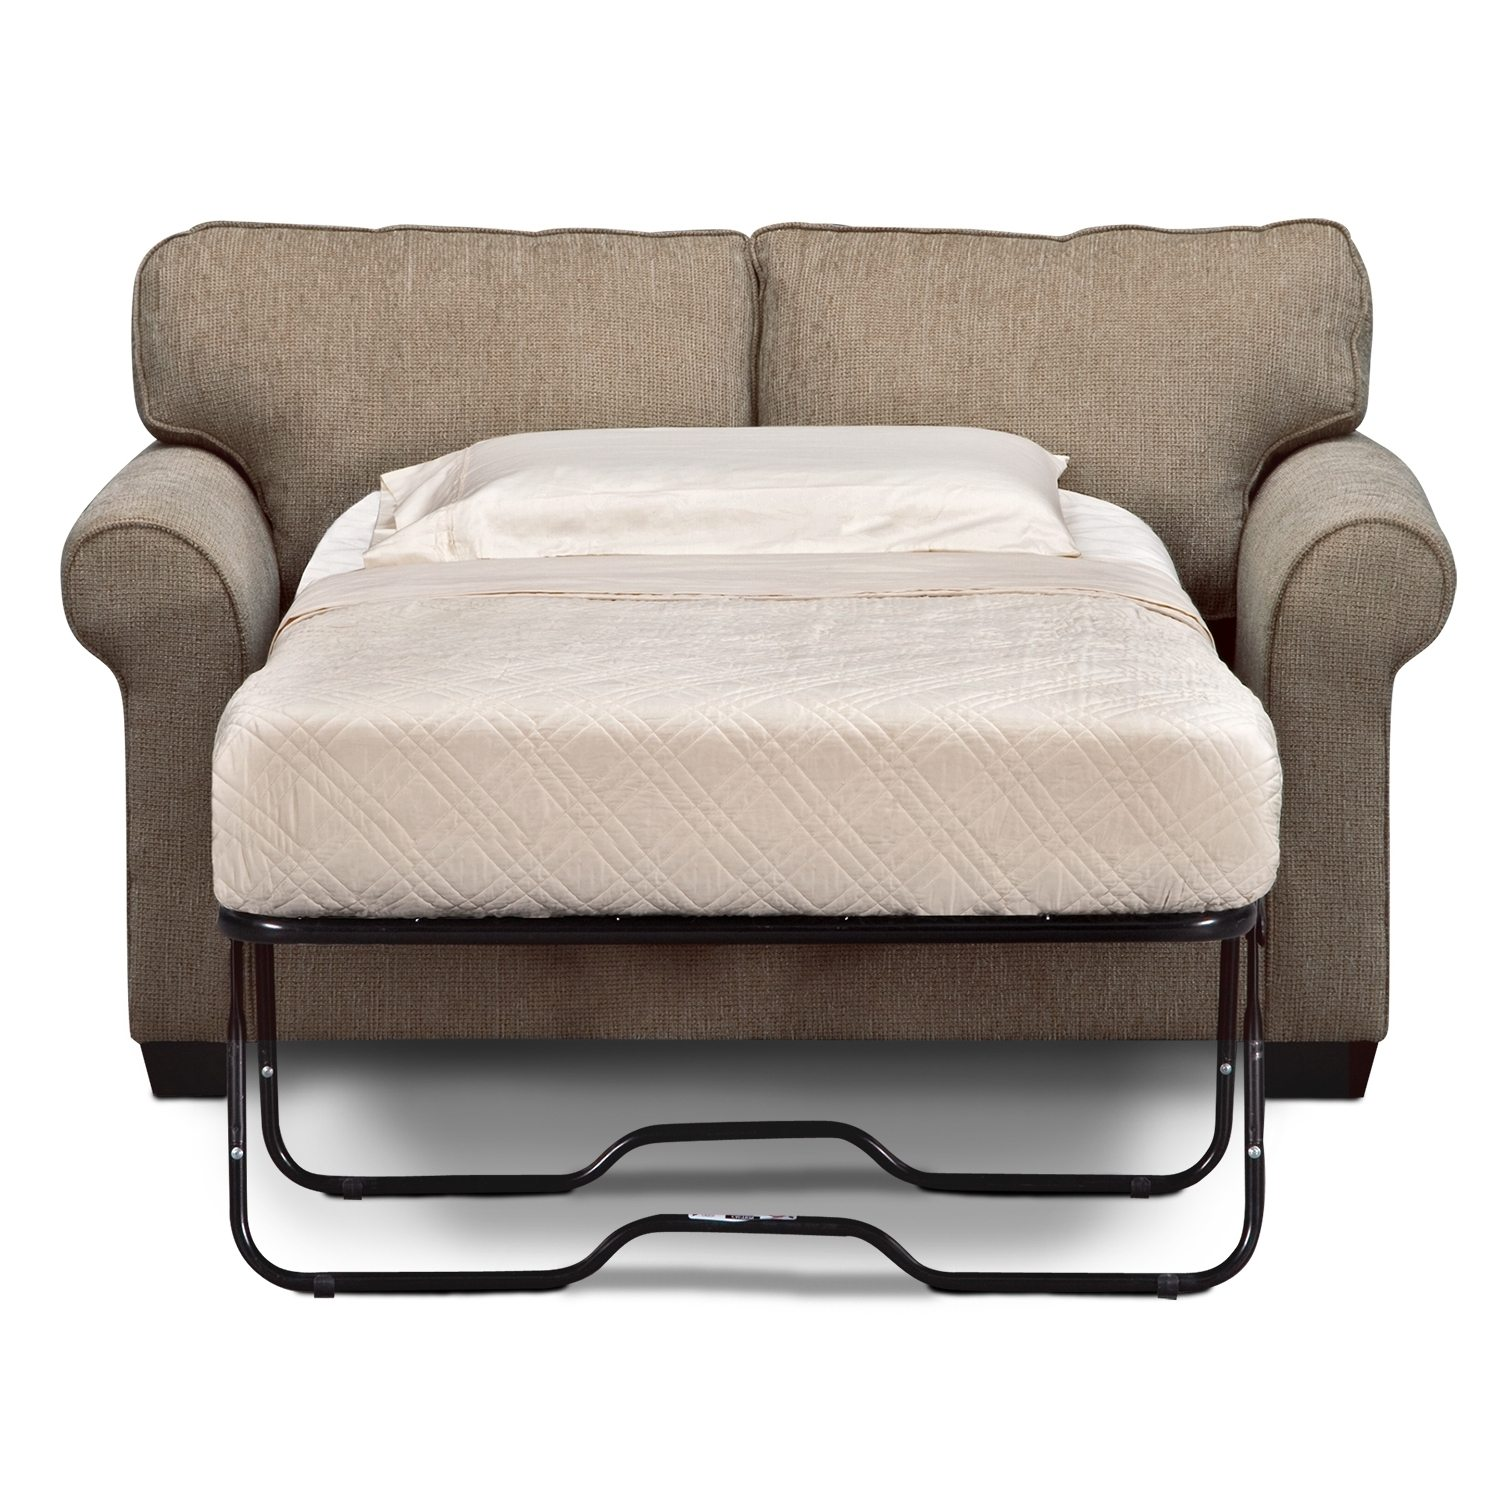 Picture of: Sleeper Sofa Bobs Hawk Haven